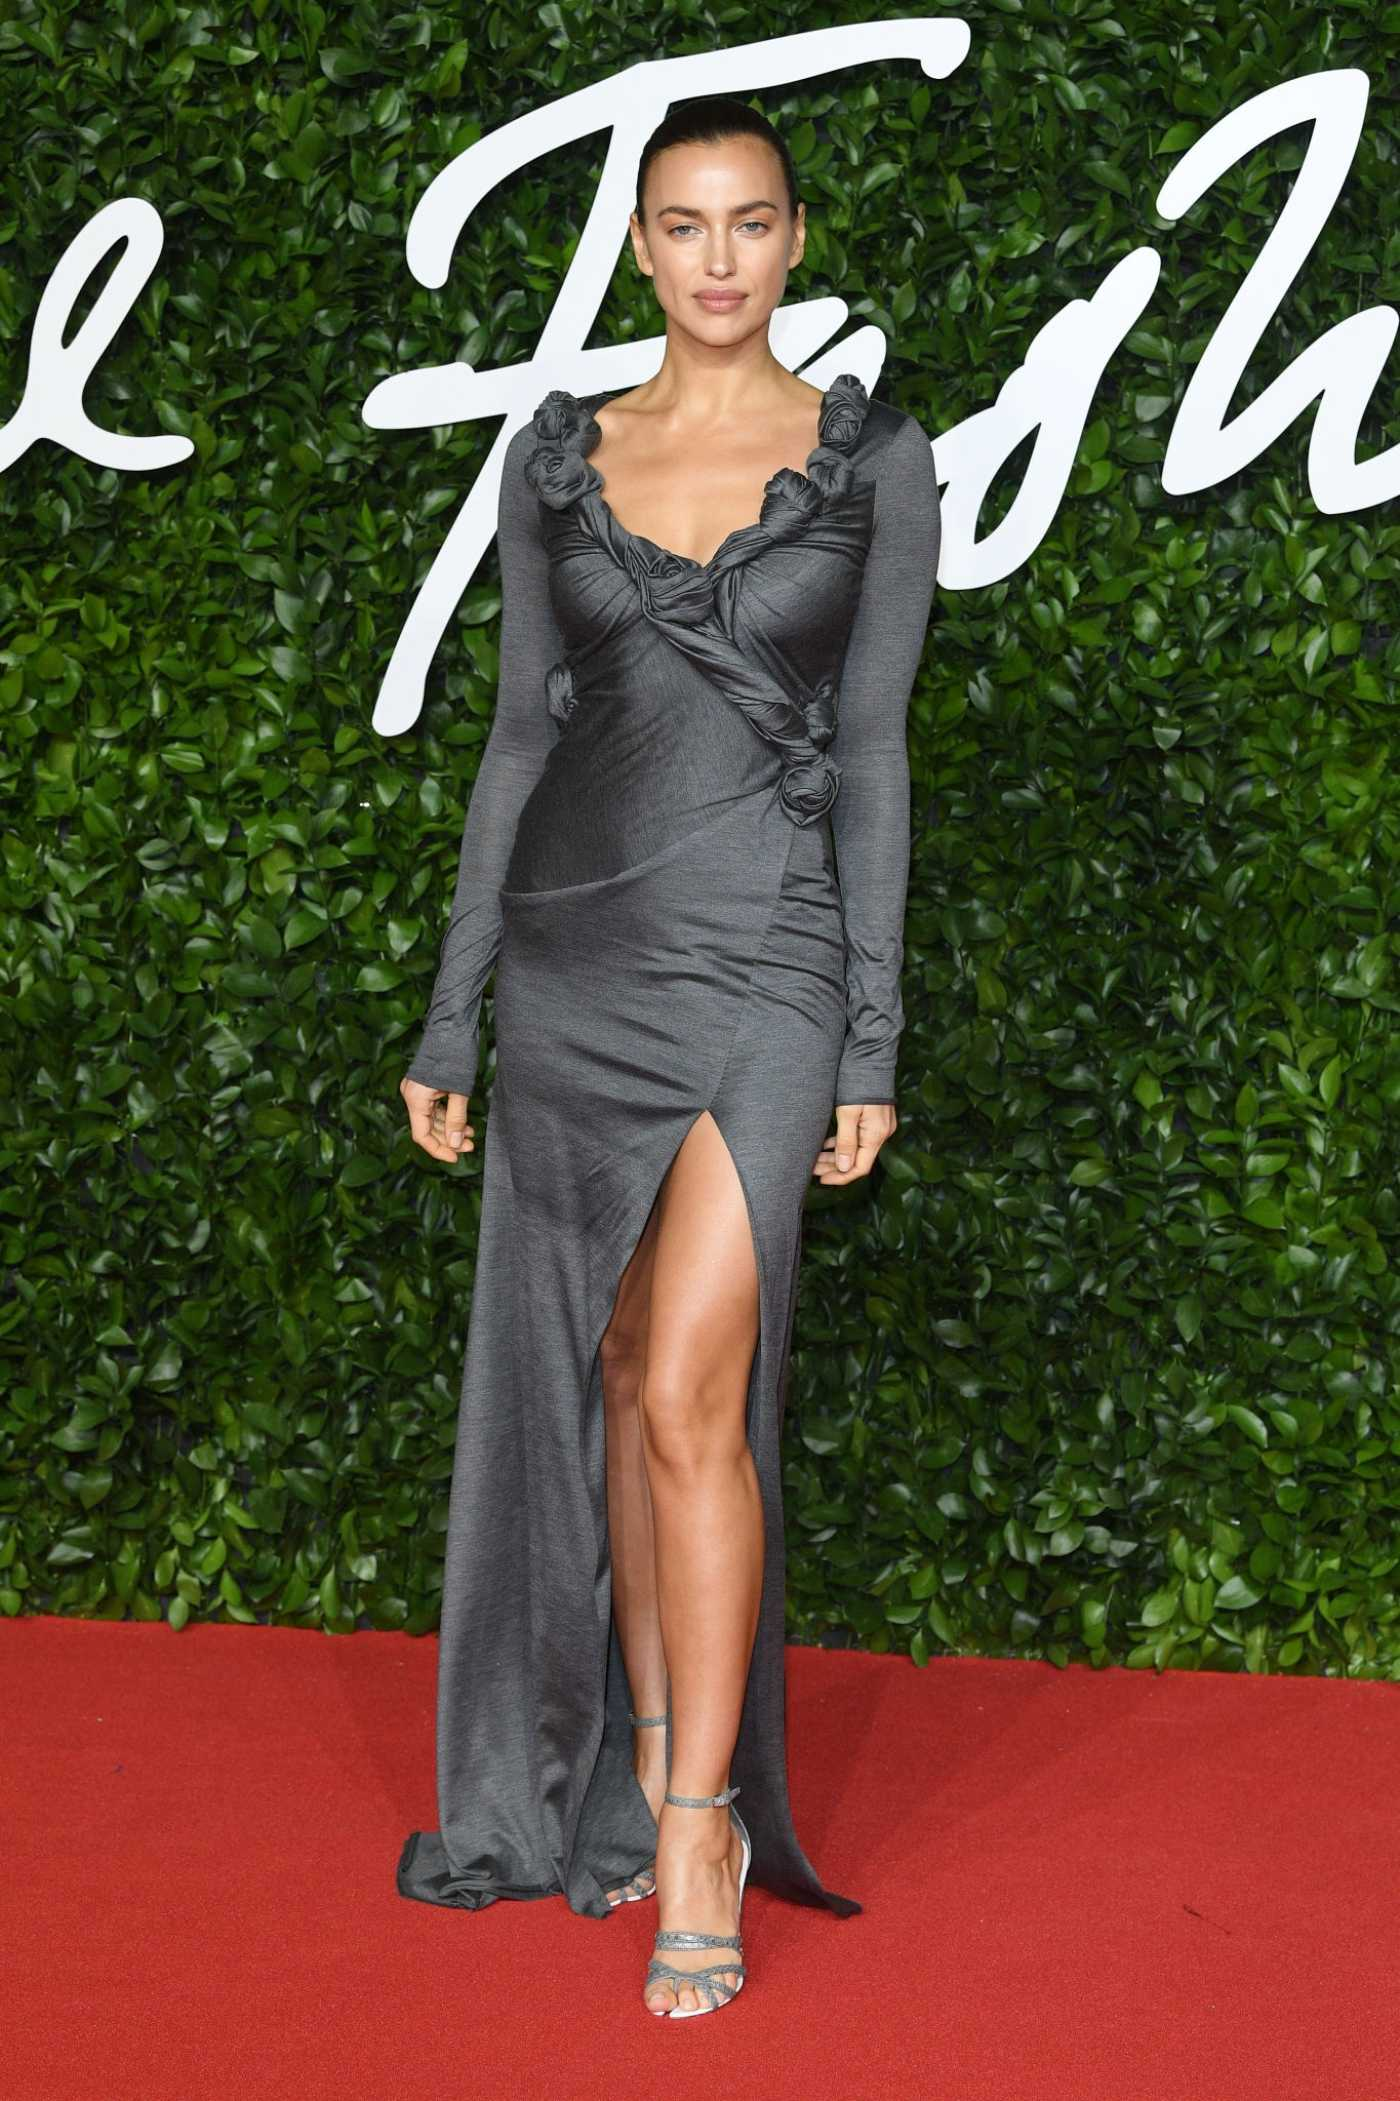 Irina Shayk Attends 2019 Fashion Awards at Royal Albert Hall in London 12/02/2019